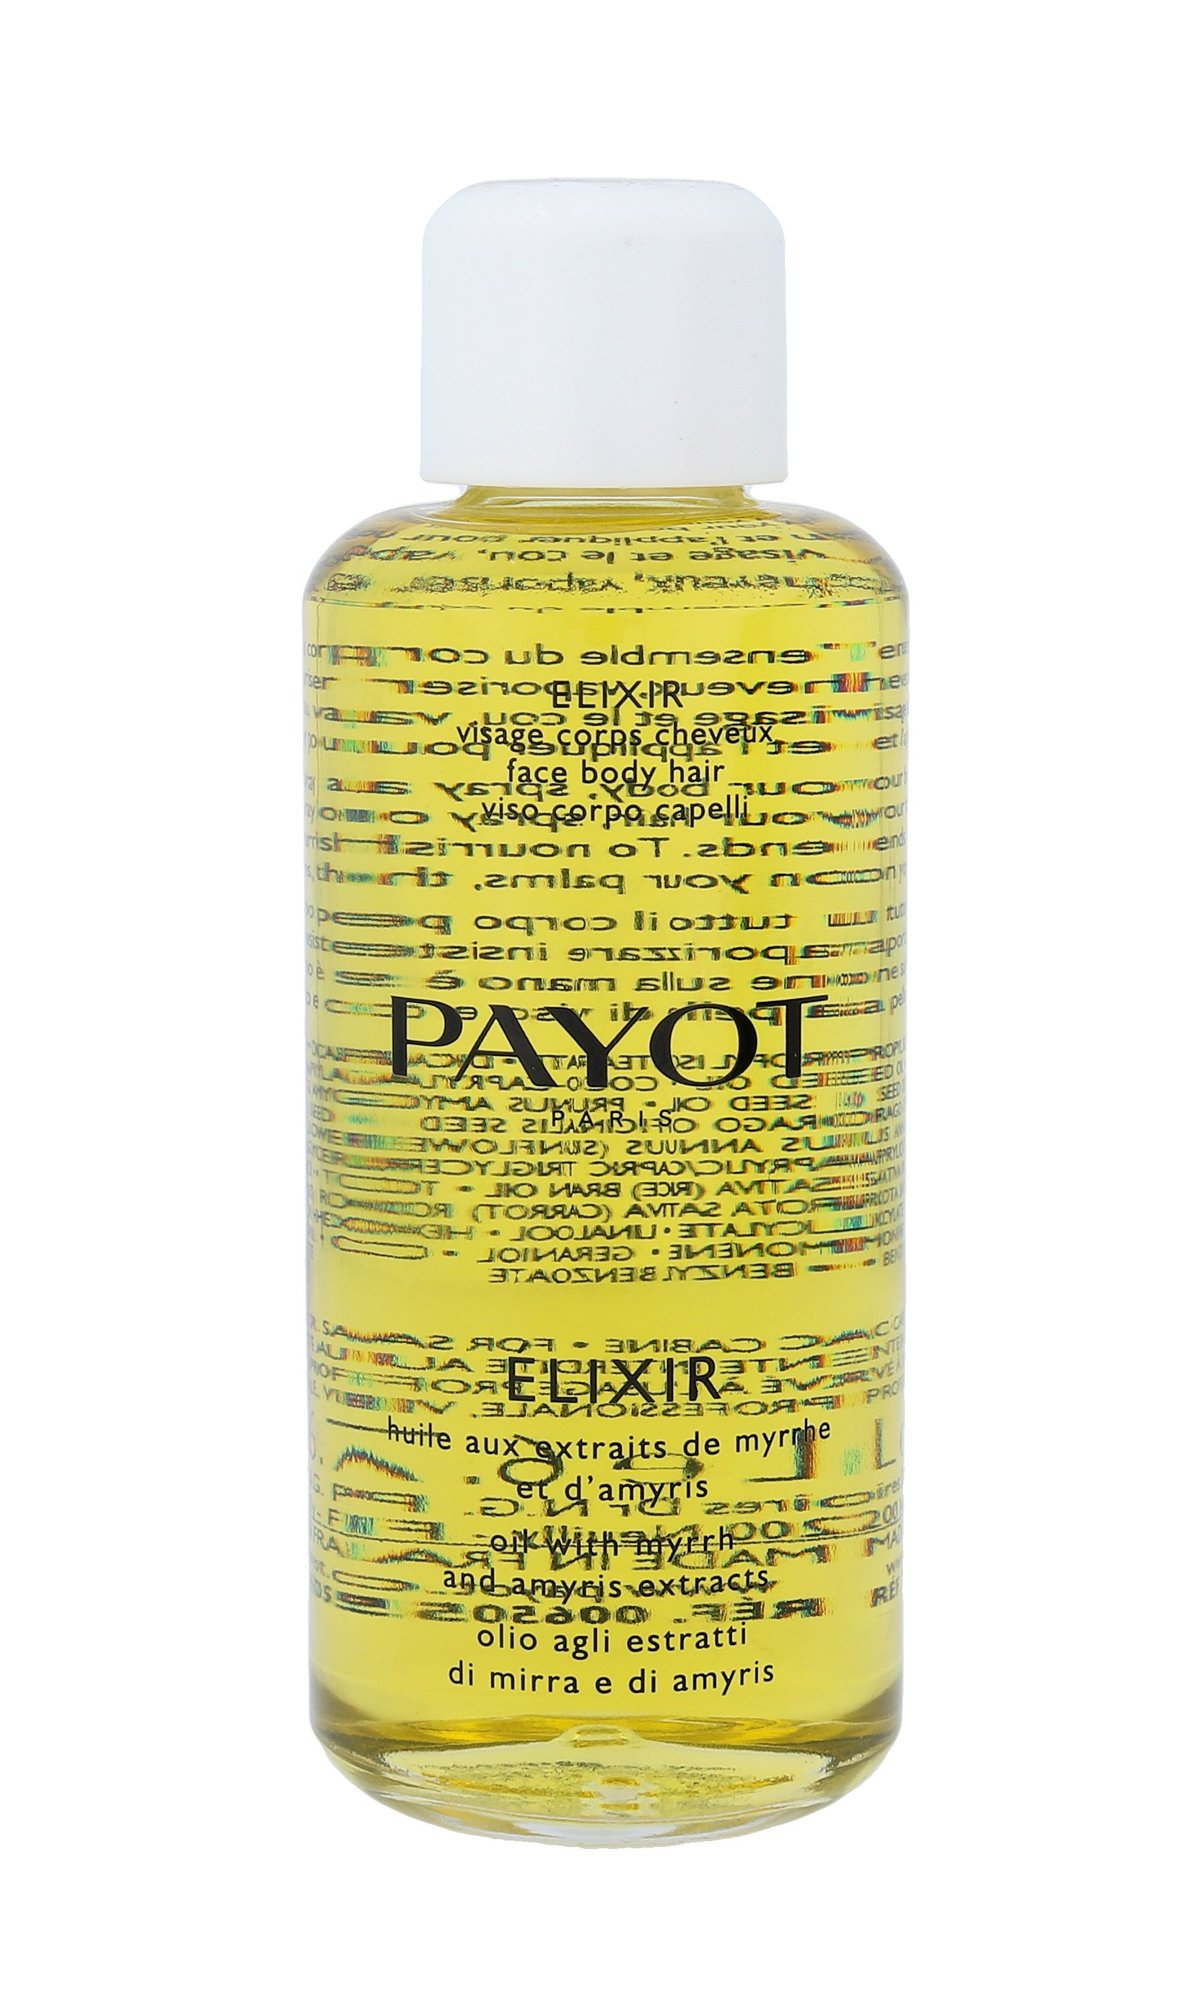 PAYOT Elixir Cosmetic 200ml  Body Face Hair Oil